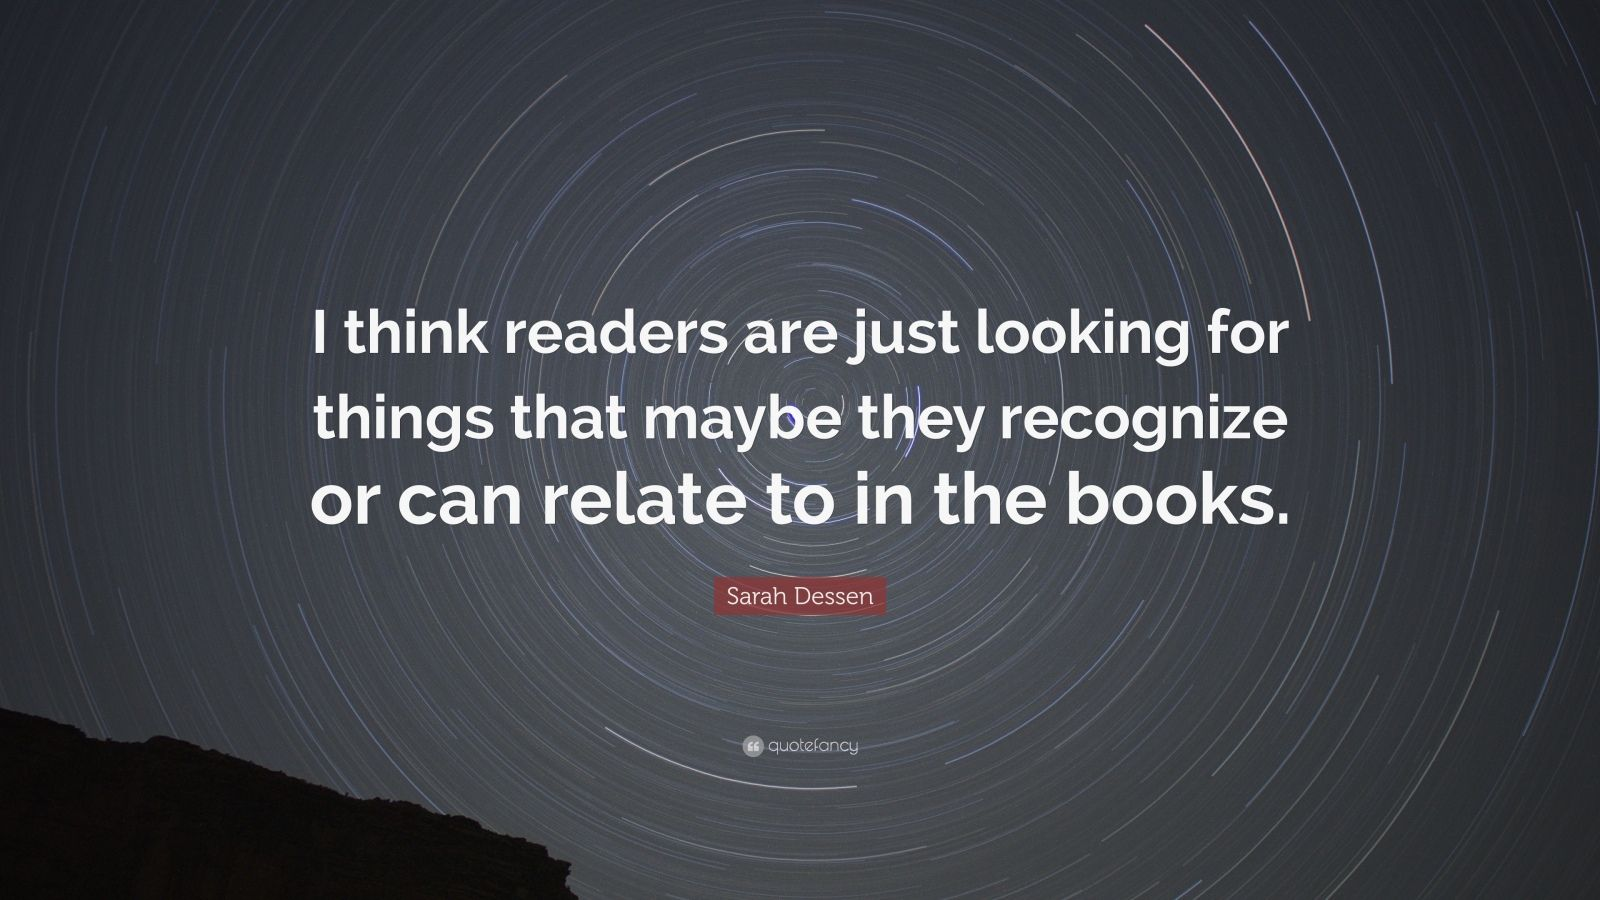 """Sarah Dessen Quote: """"I think readers are just looking for things that maybe they recognize or can relate to in the books."""""""